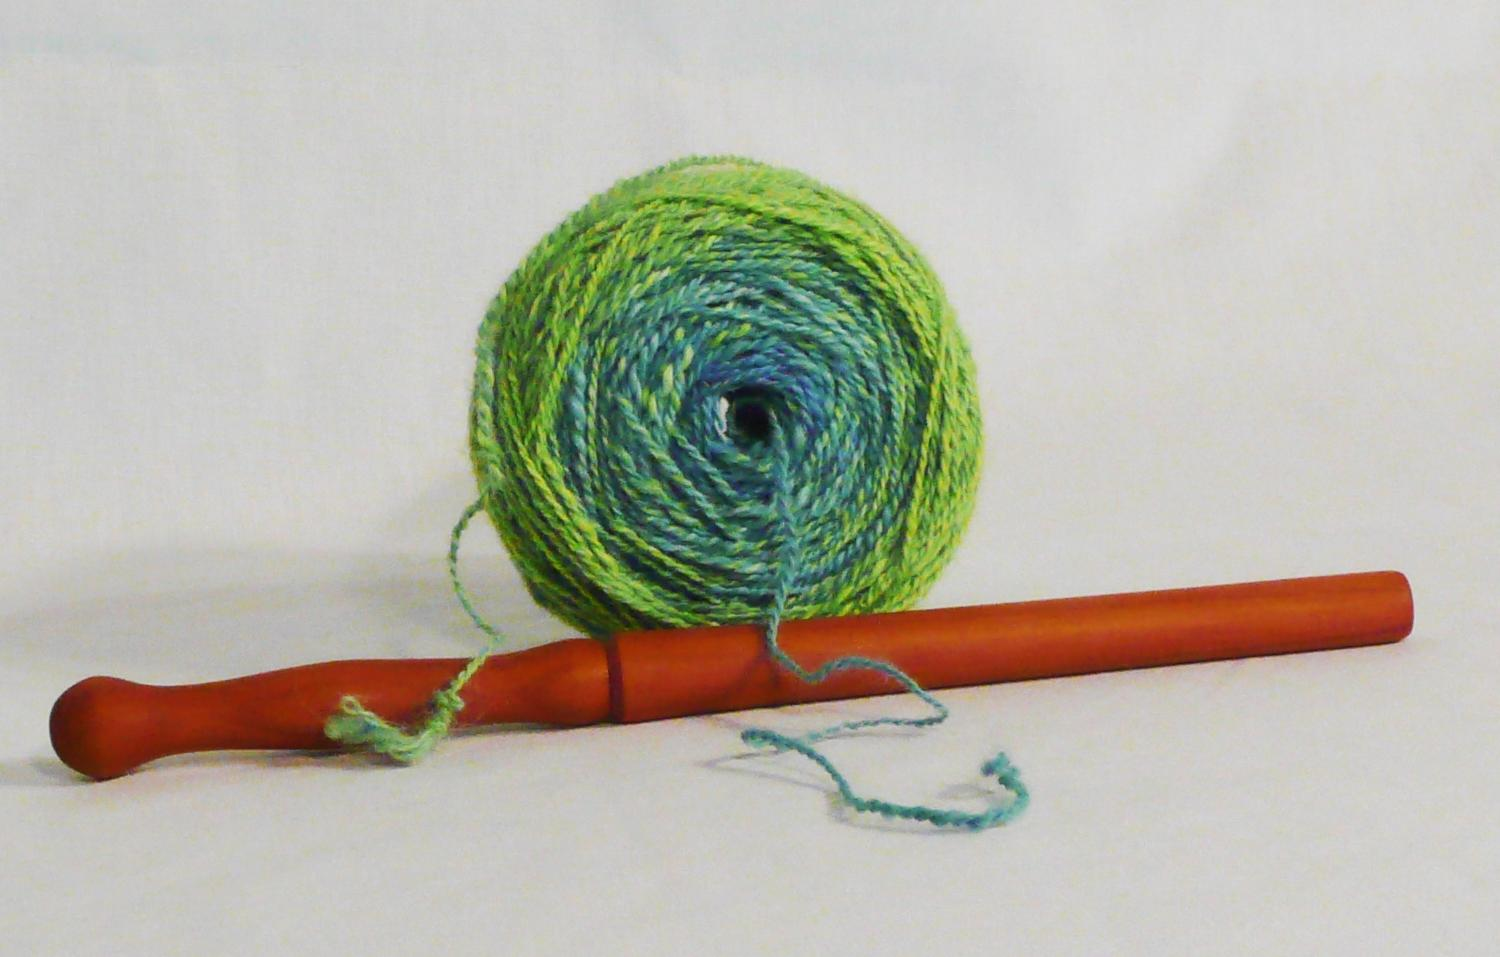 ow to use a nostepinne the tool and the result a tangle free center feed yarn ball.  Featuring a cherry wood hand turned ball winding stick hand made by Cynthia D. Haney.